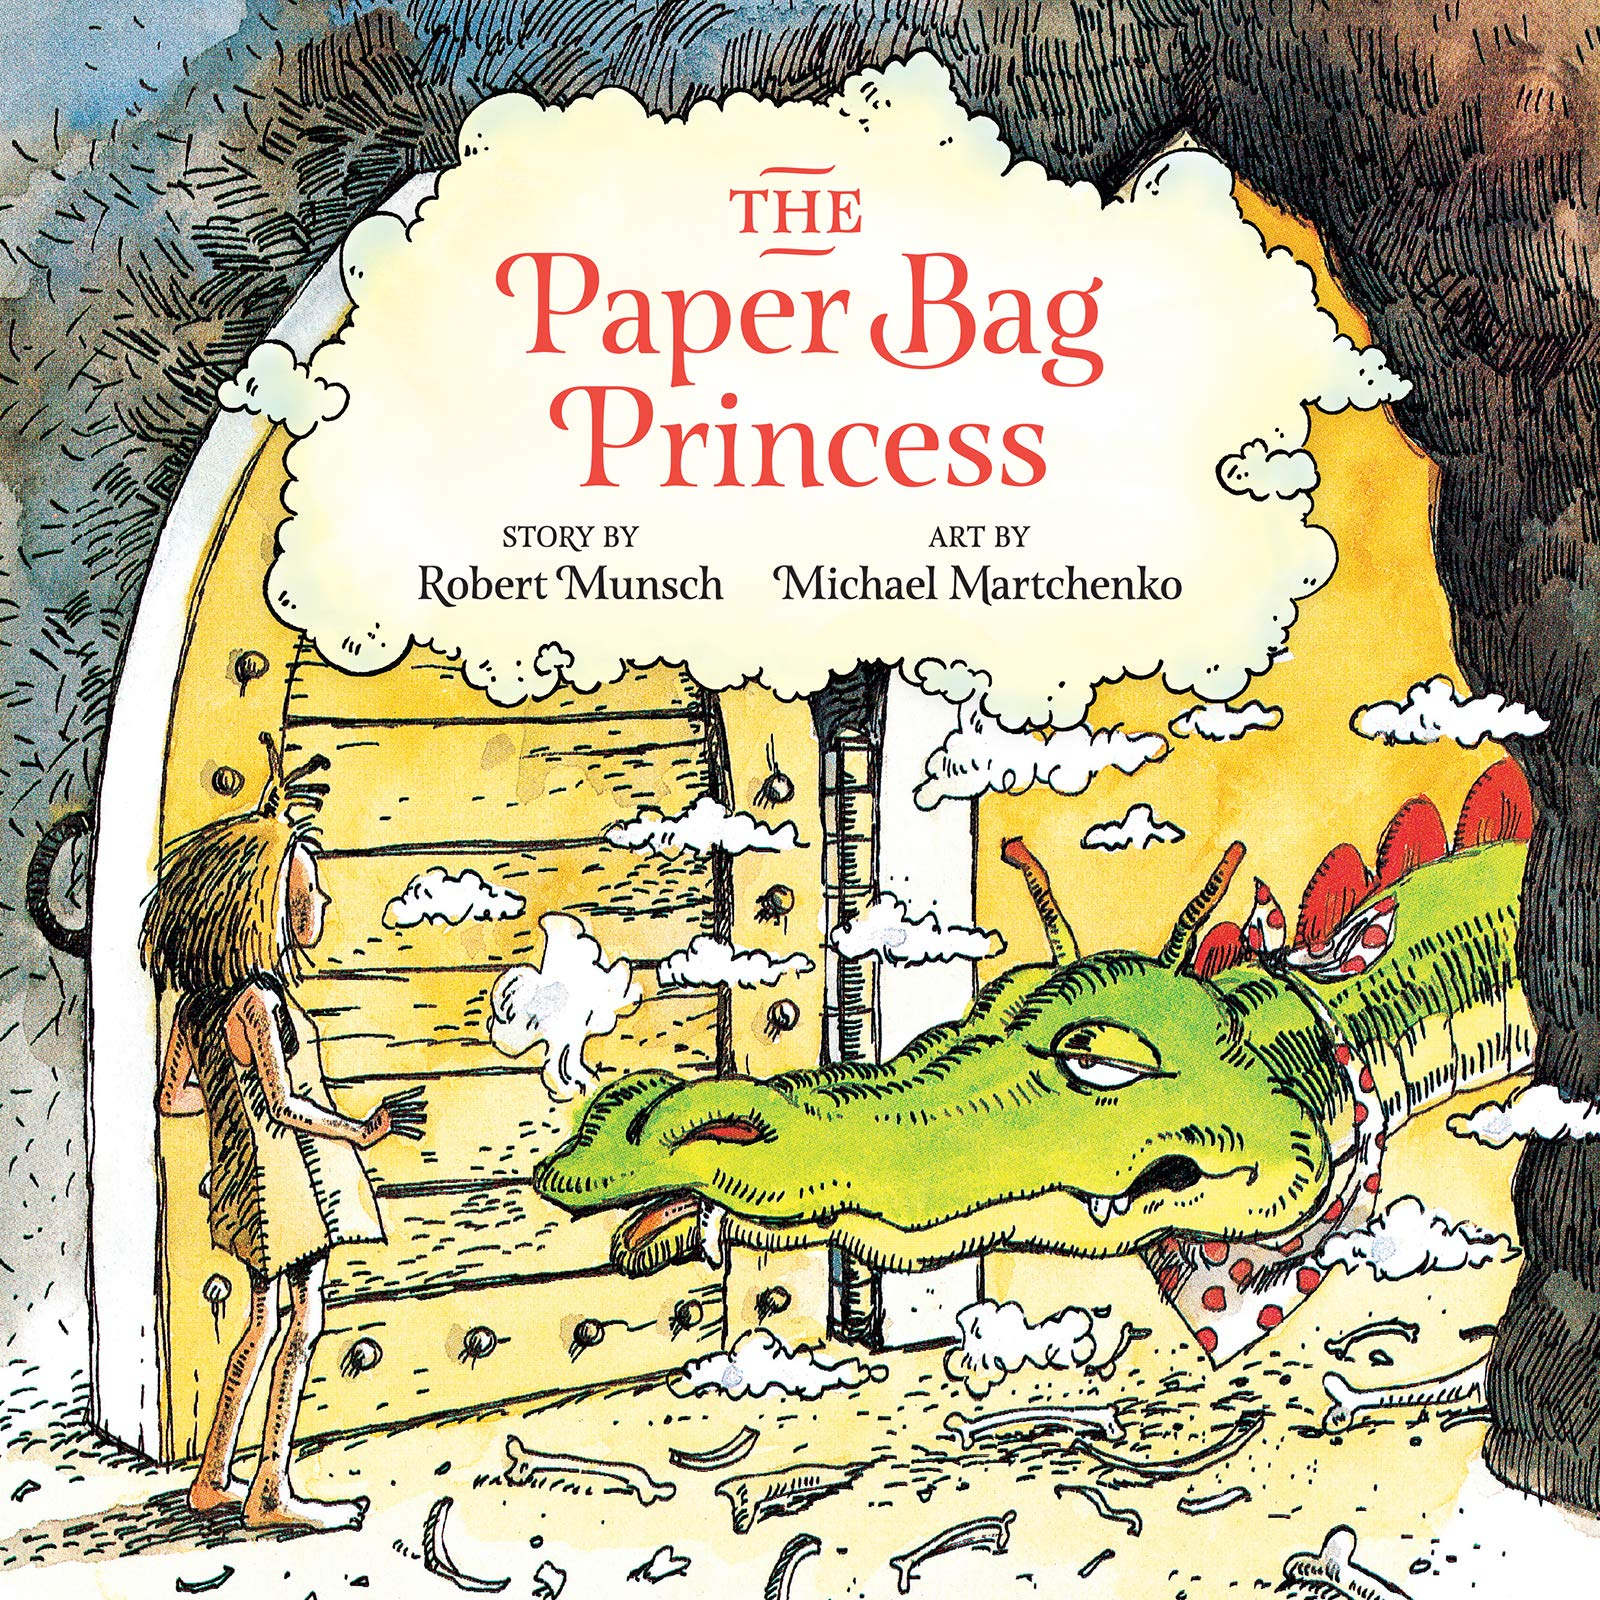 The Paper Bag Princess (unabridged): Munsch, Robert, Martchenko, Michael:  9781773214054: Books - Amazon.ca